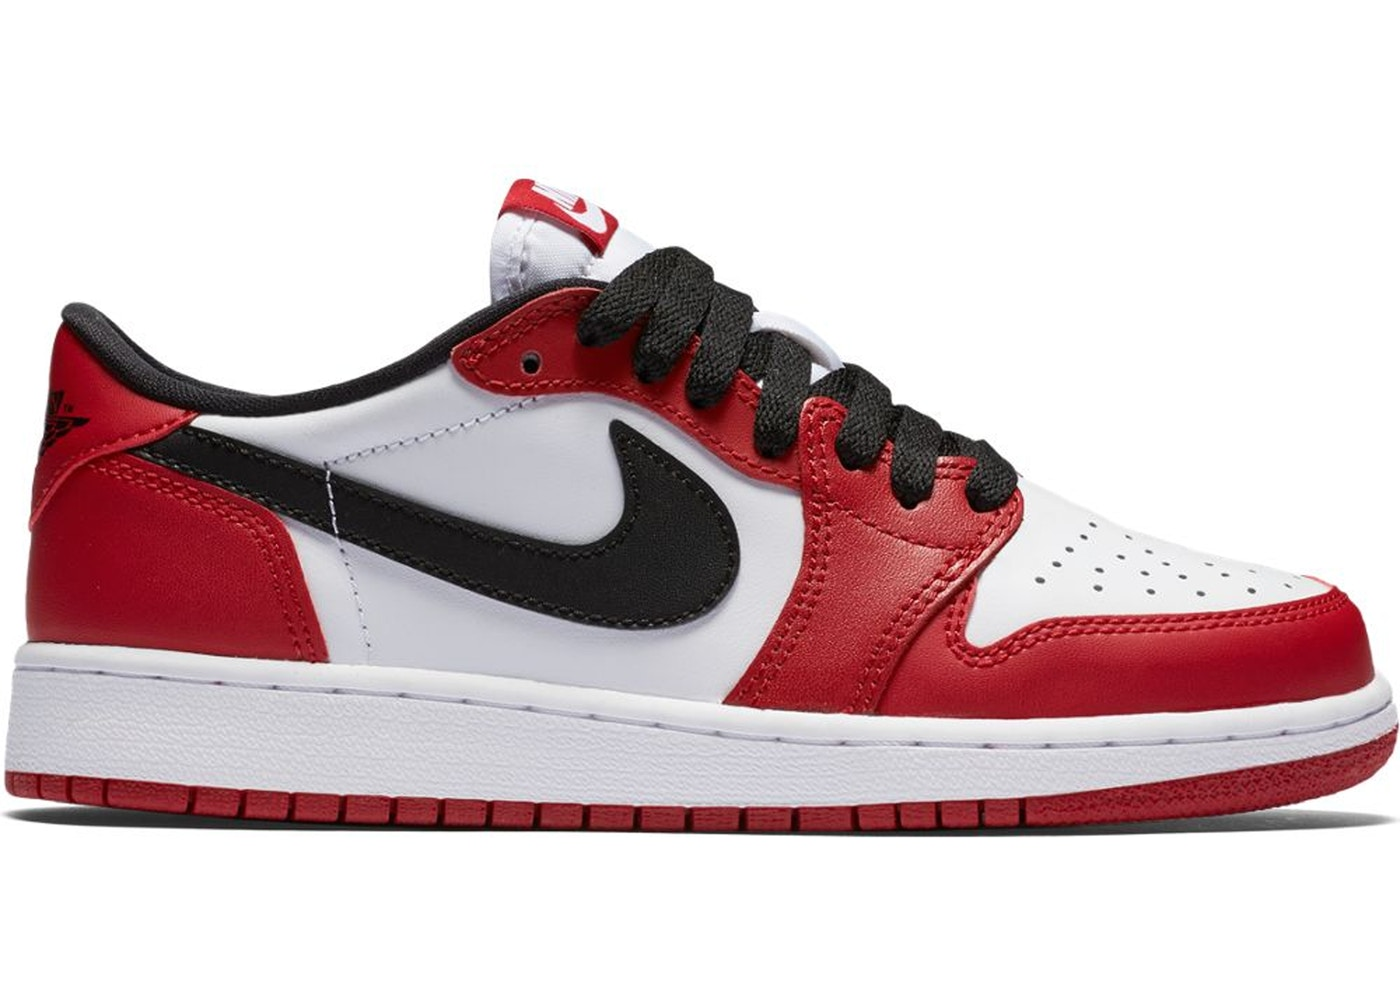 Jordan 1 Retro Low Chicago 2016 (GS)